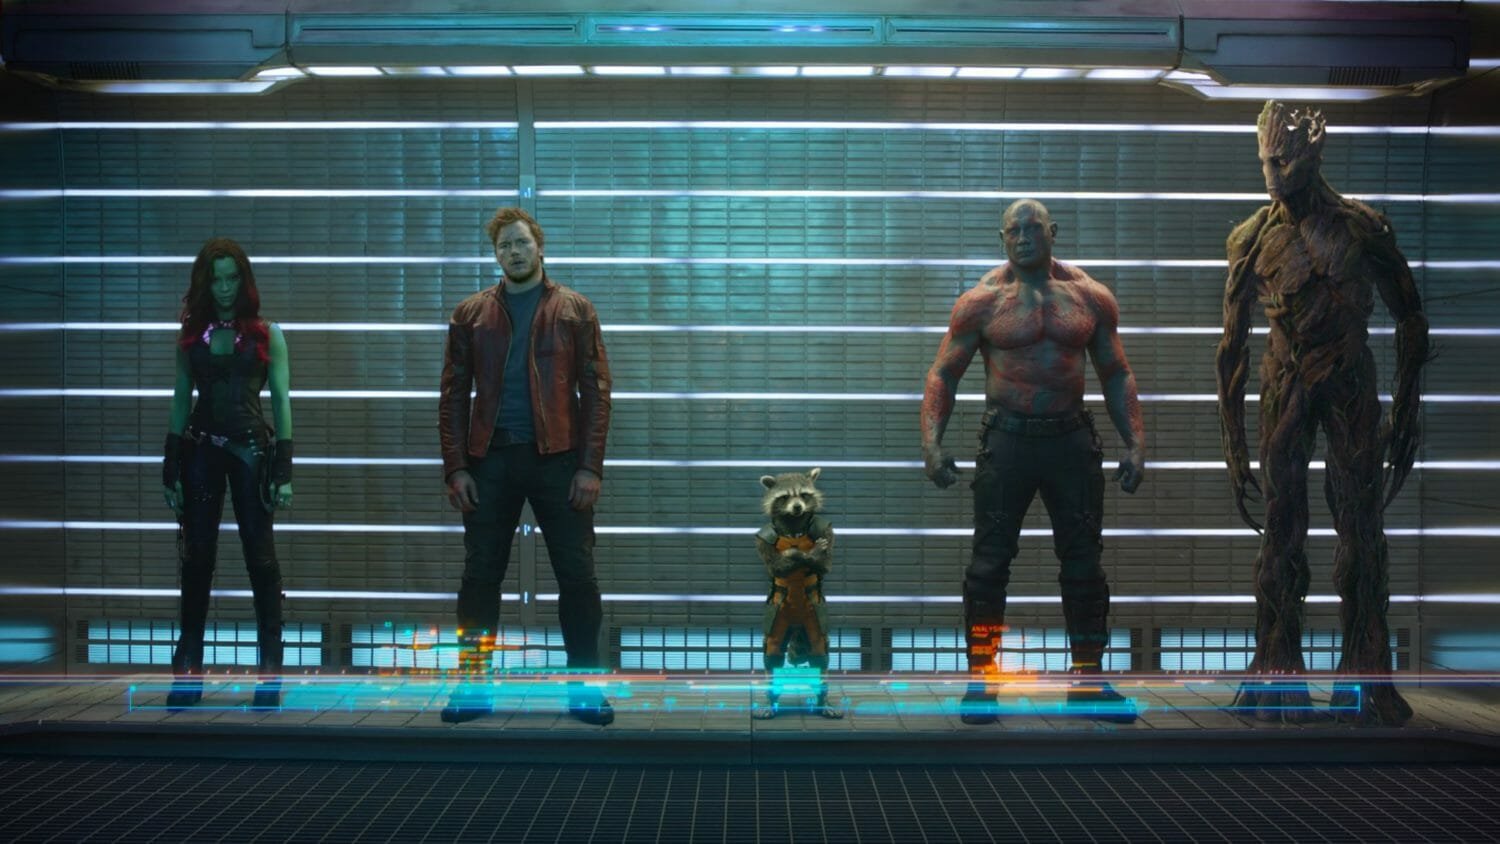 The top five feature films of 2014 - Guardians of the Galaxy